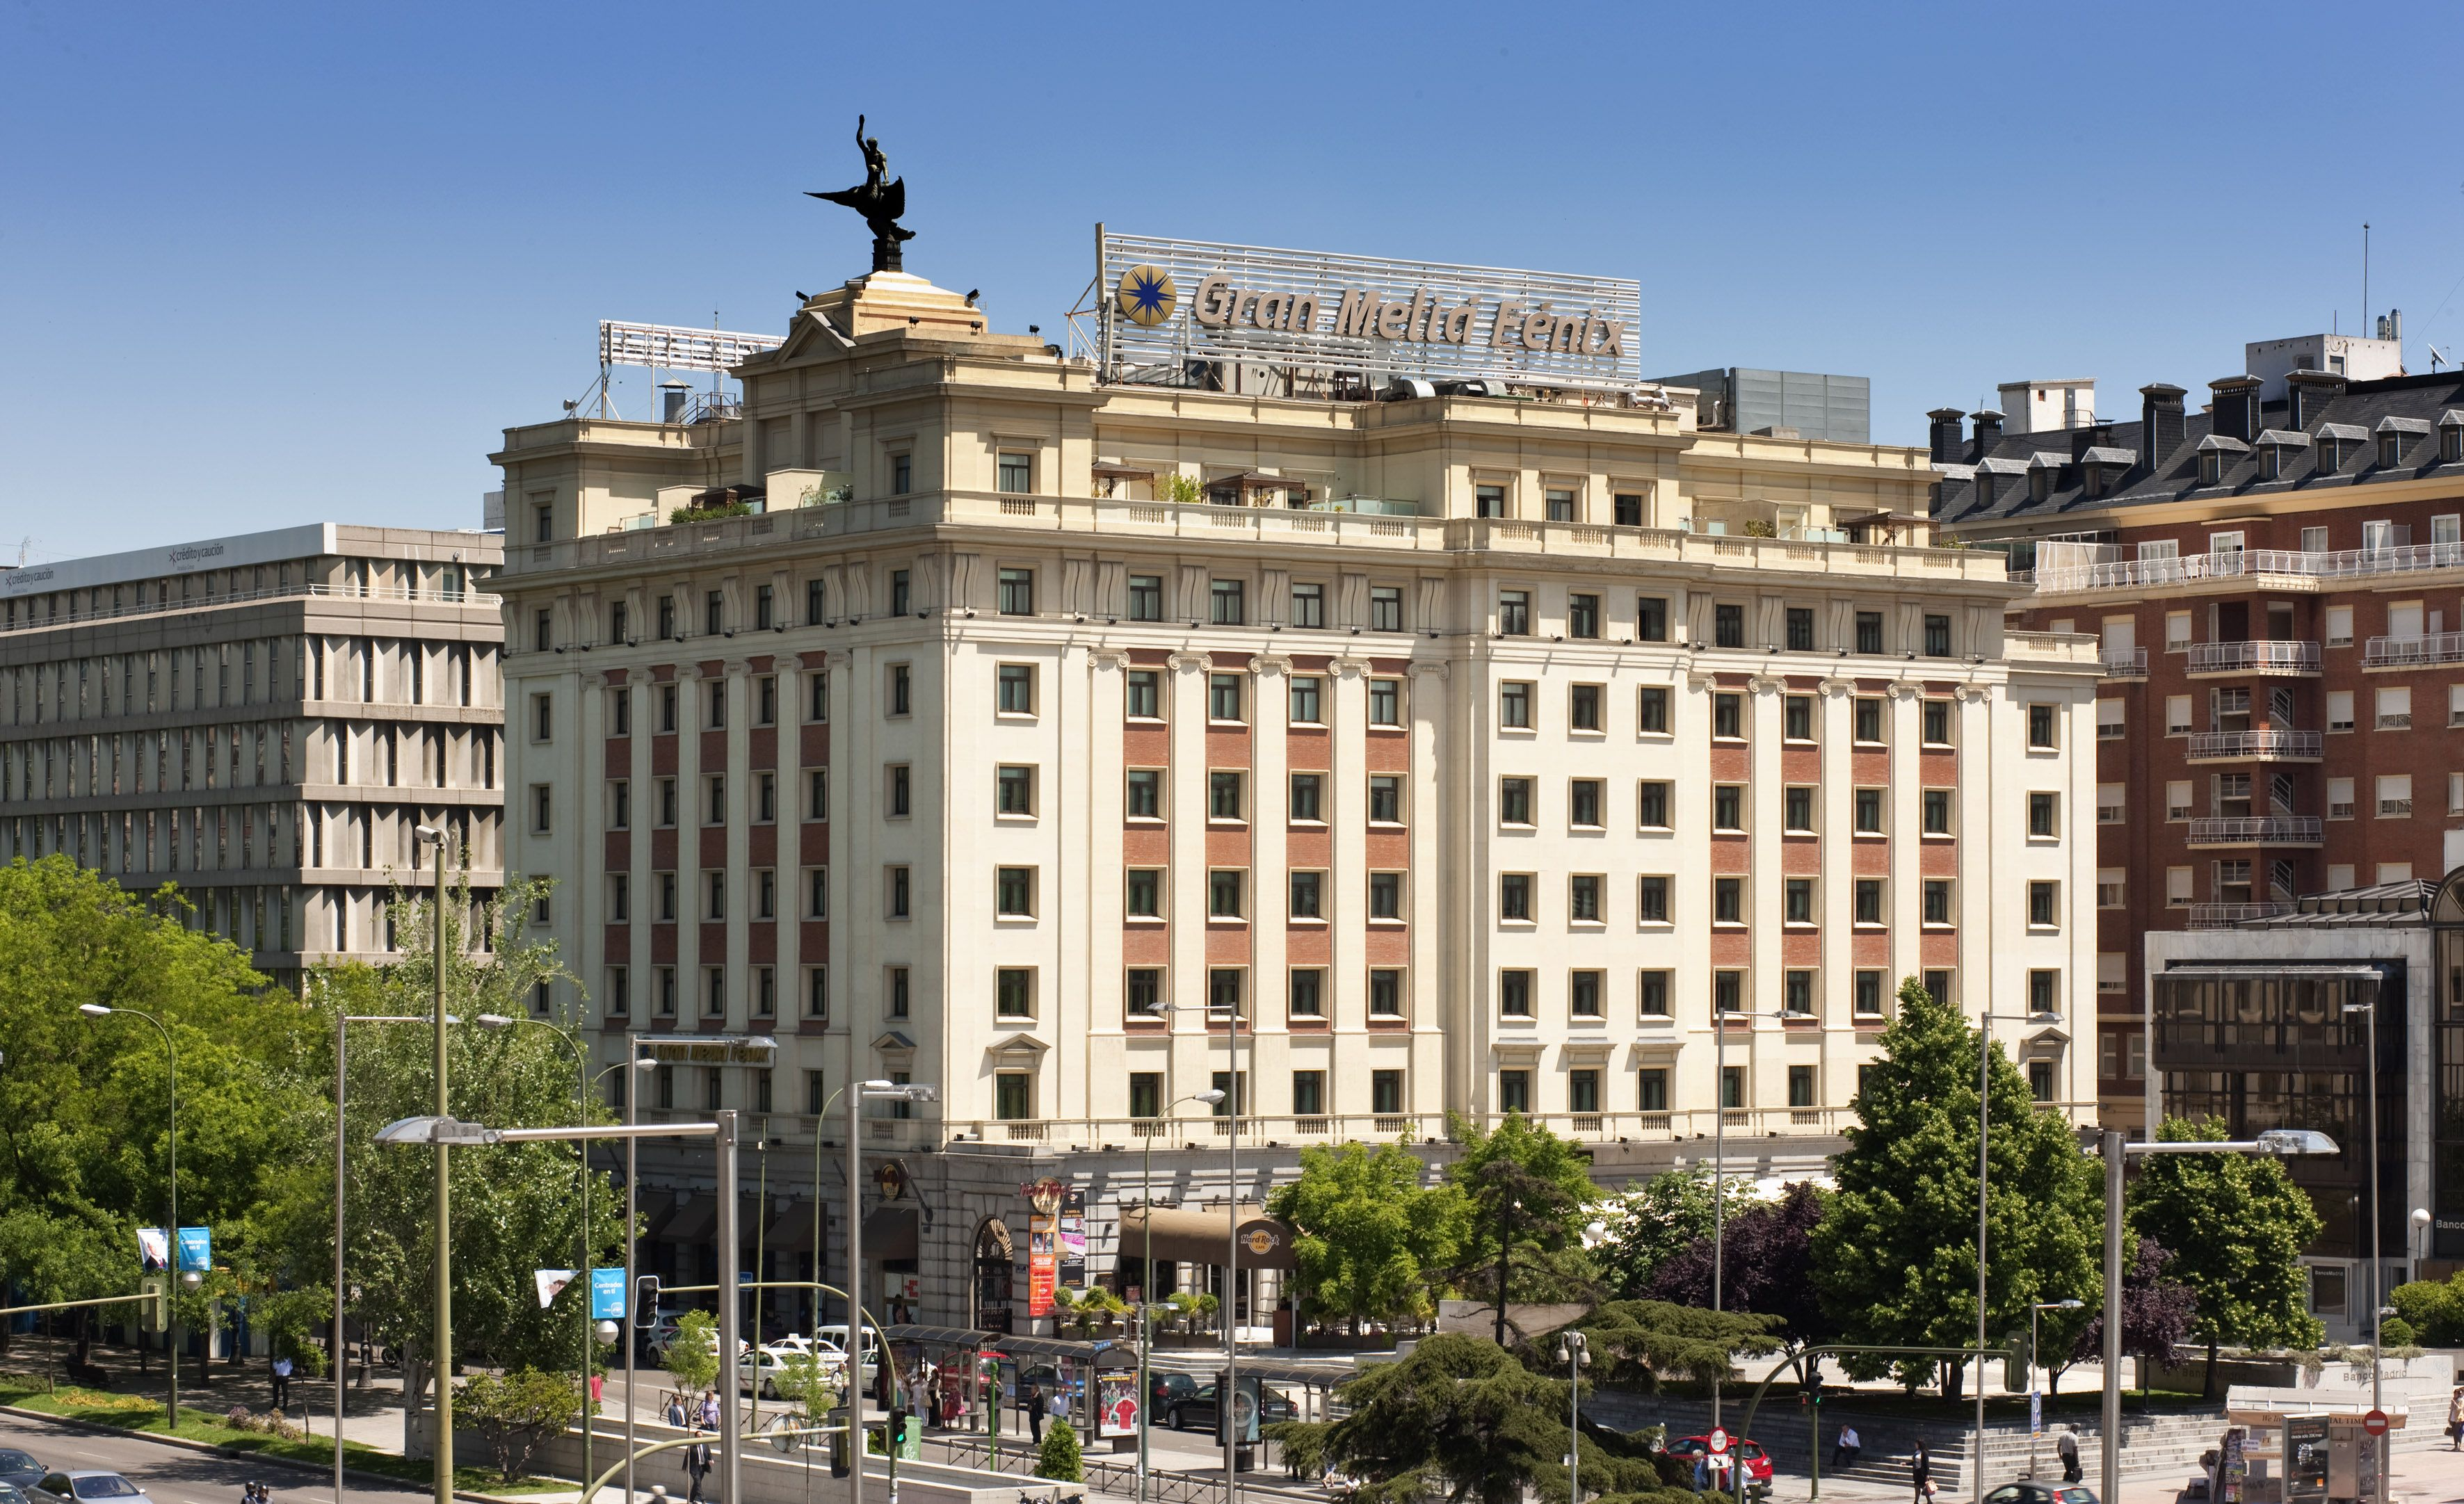 The Gran Melia Fenix Is A Luxury Hotel In Madrid Located In The